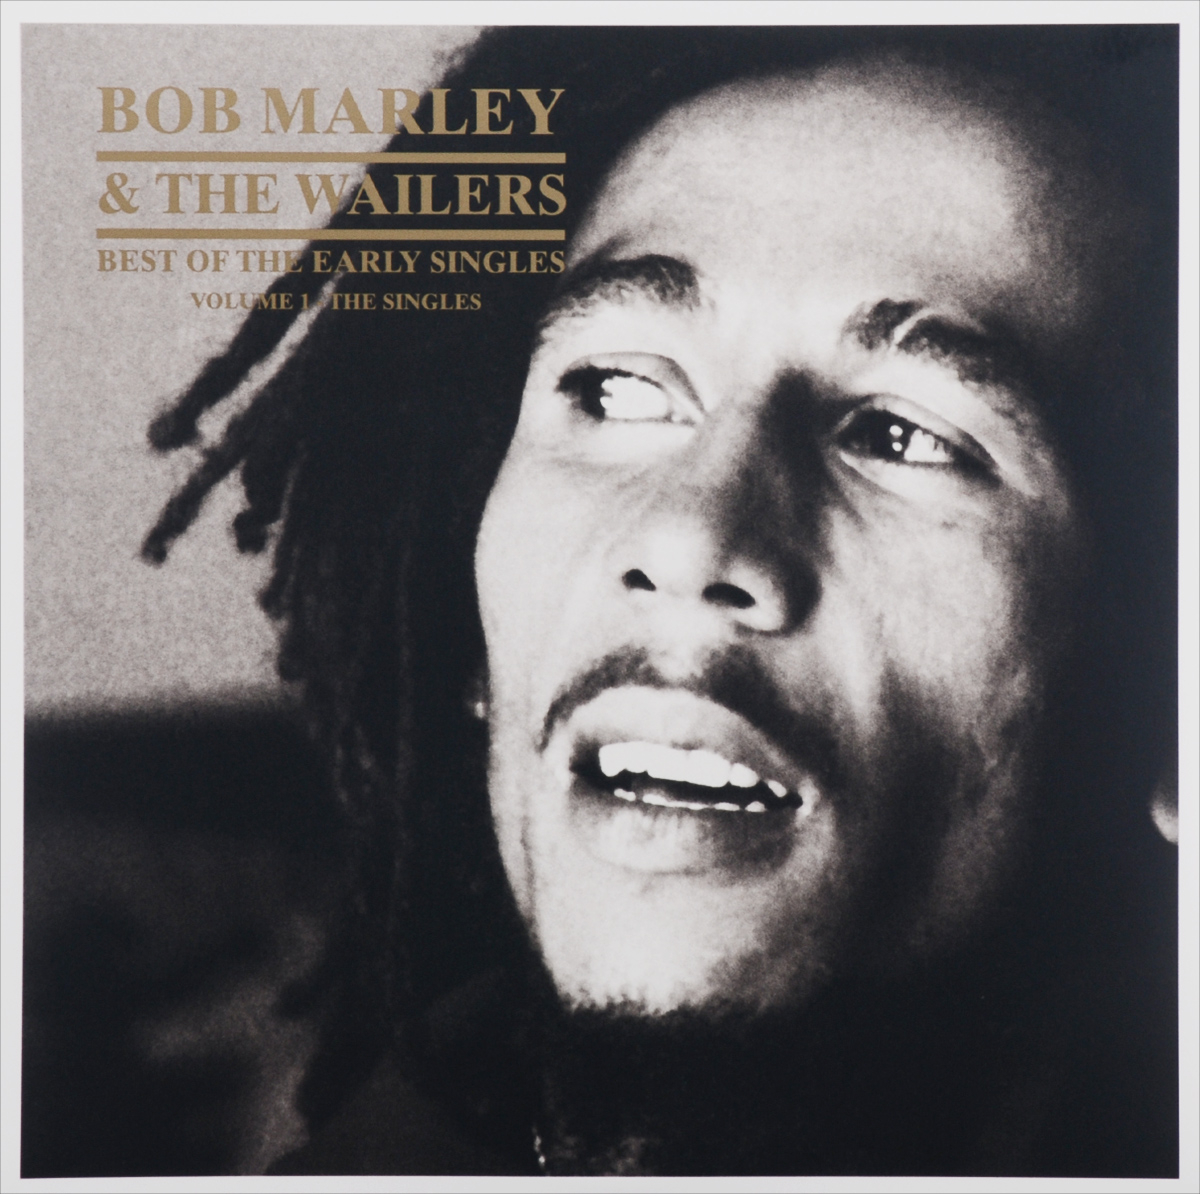 Боб Марли,The Wailers Bob Marley & The Wailers. Best Of The Early Singles. Volume 1 - The Singles (2 LP) module amenability of banach algebras